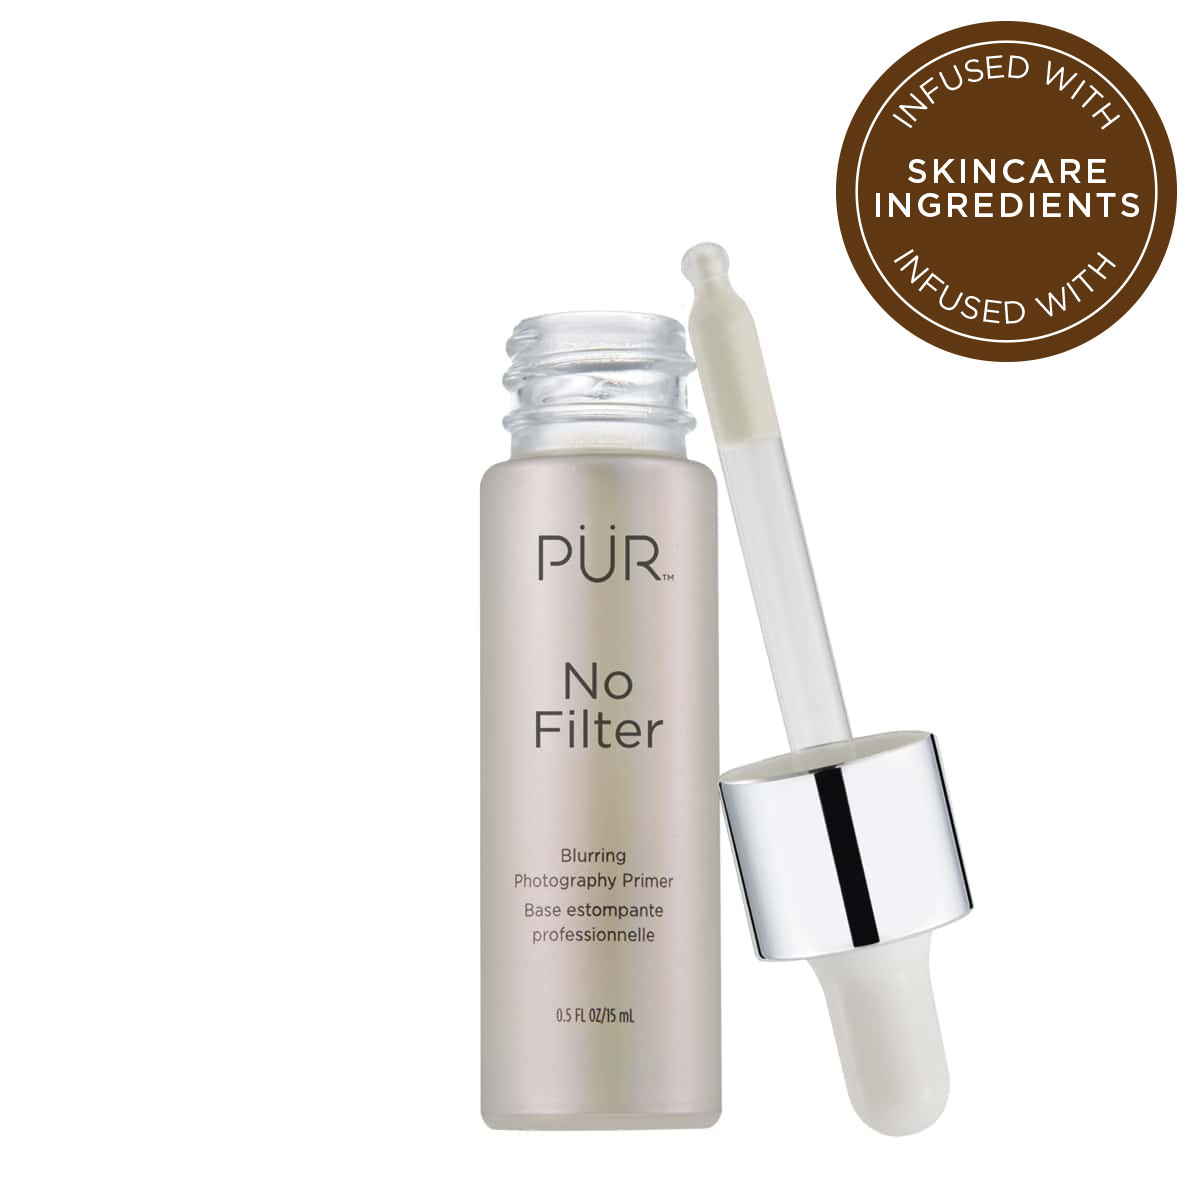 No Filter Blurring Photography Primer Pur The Complexion Authority